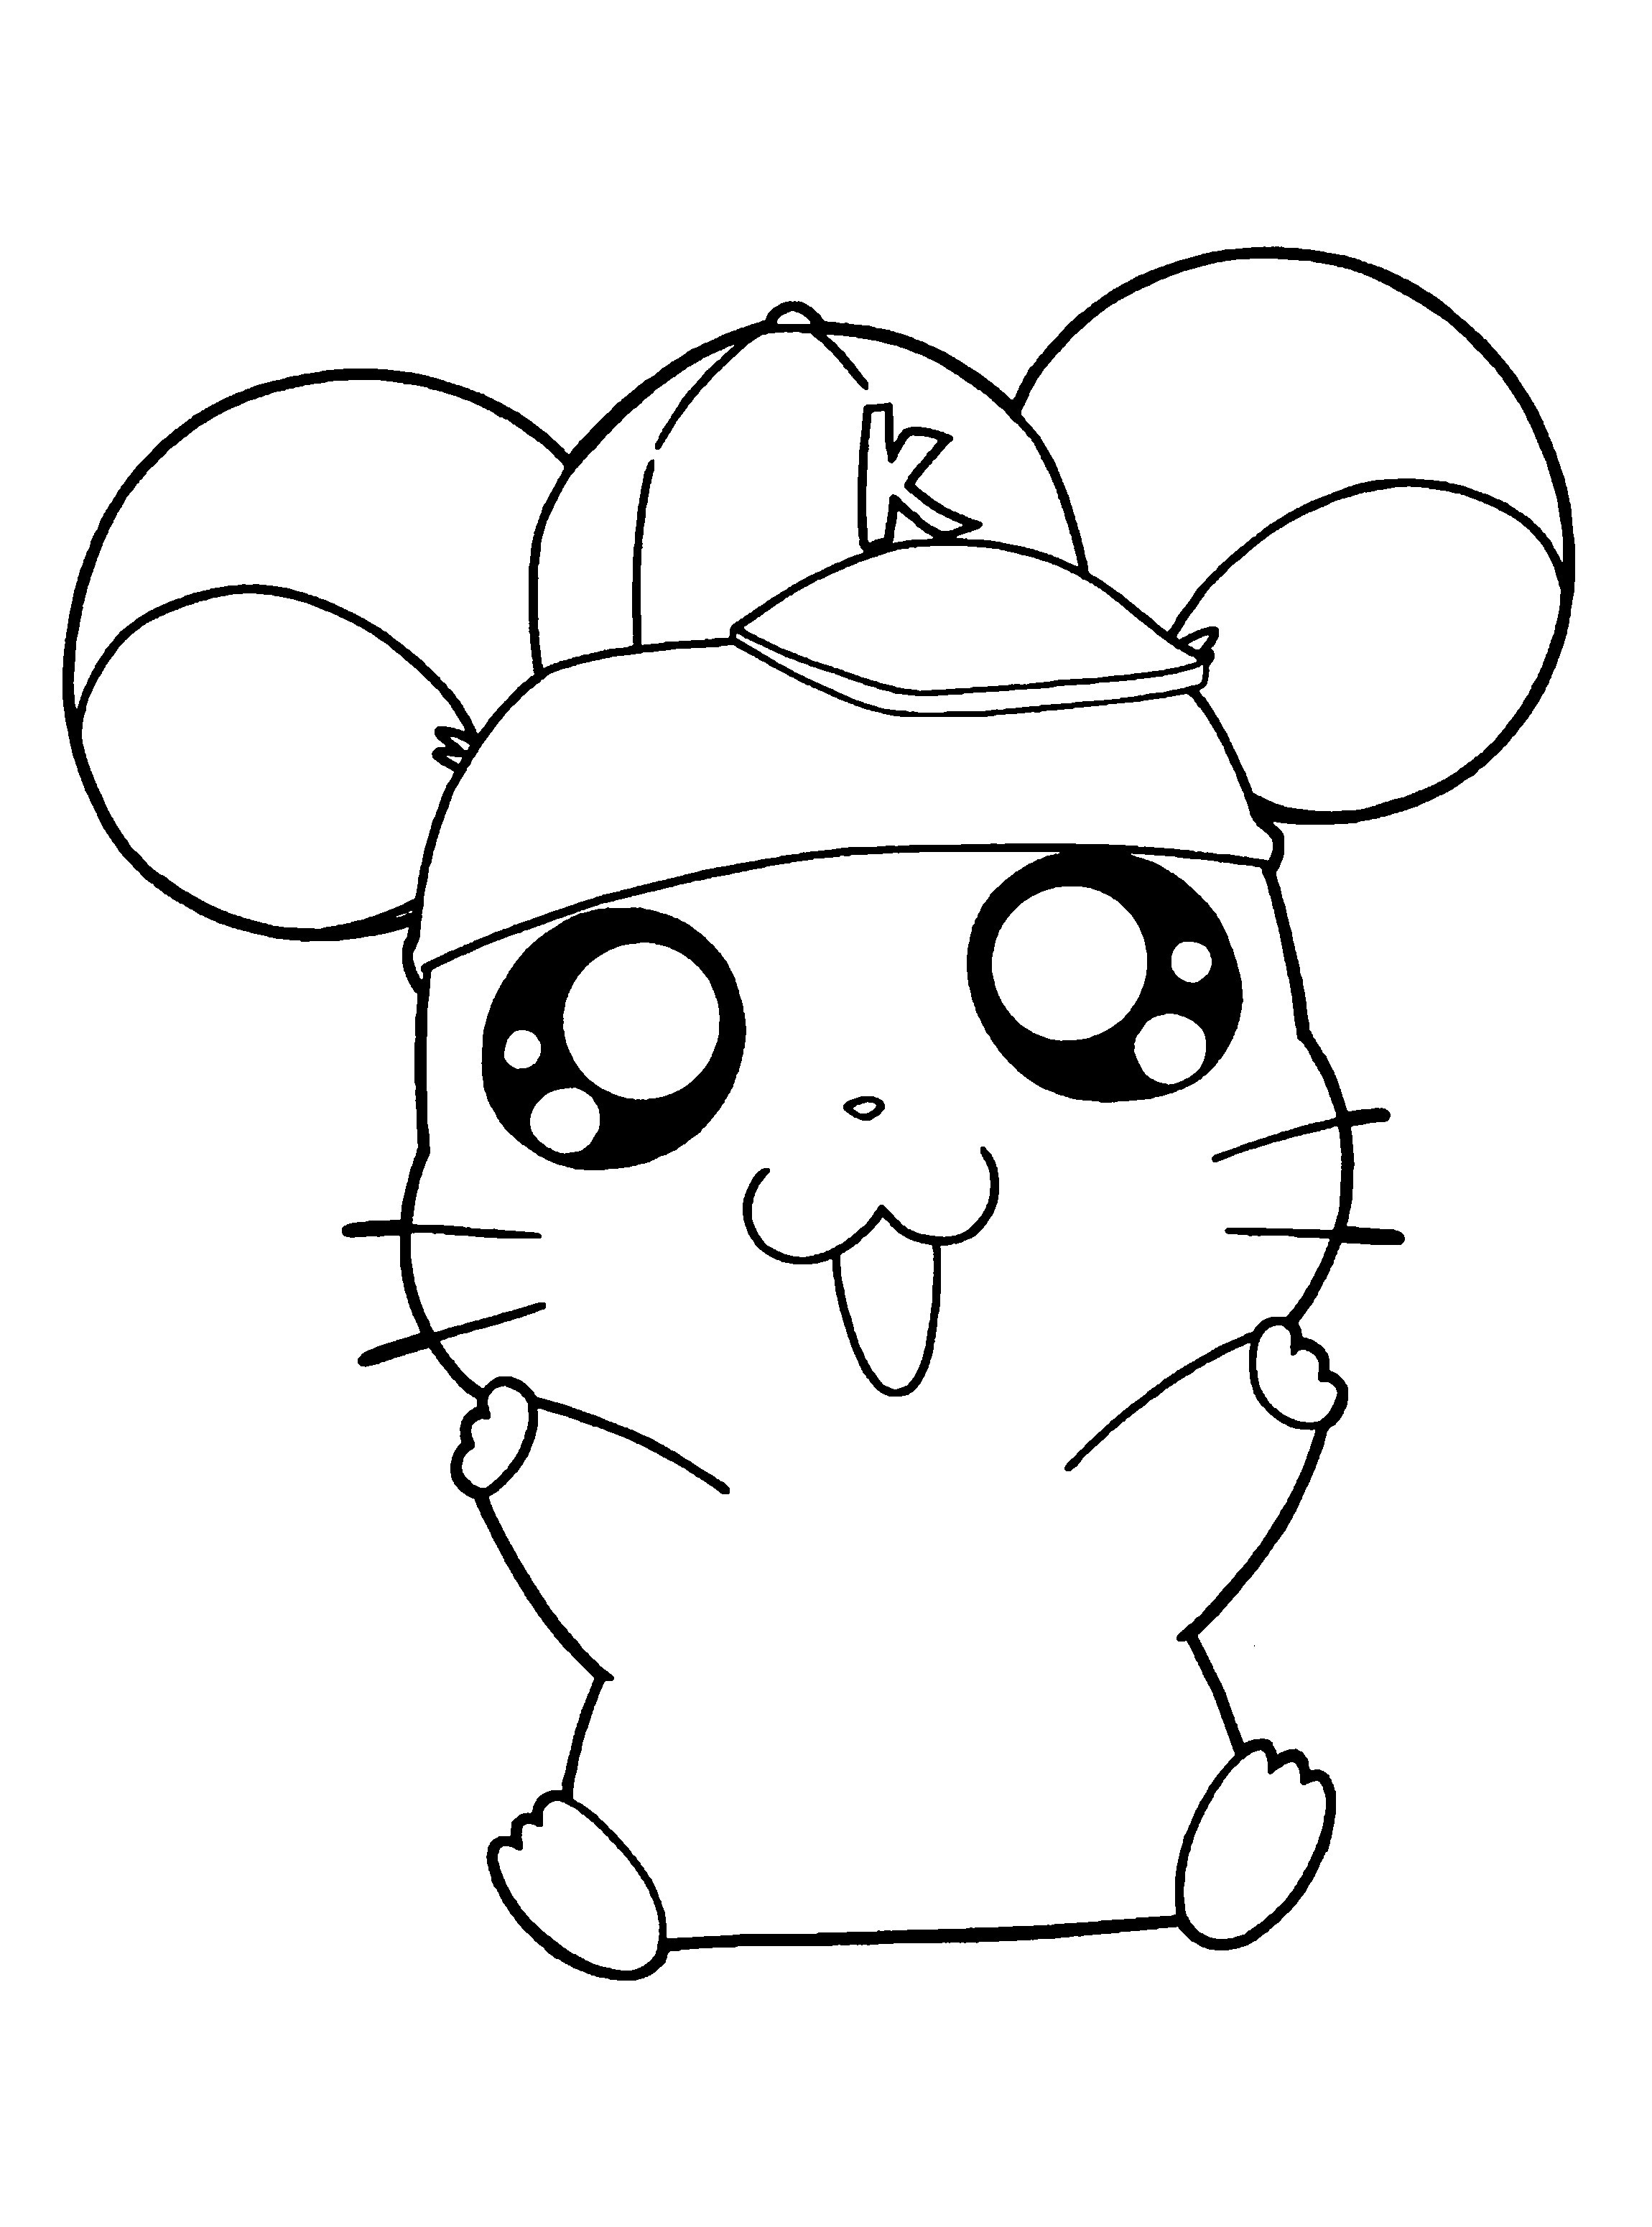 hamster coloring pages to print cute hamster coloring pages coloring home to print hamster pages coloring